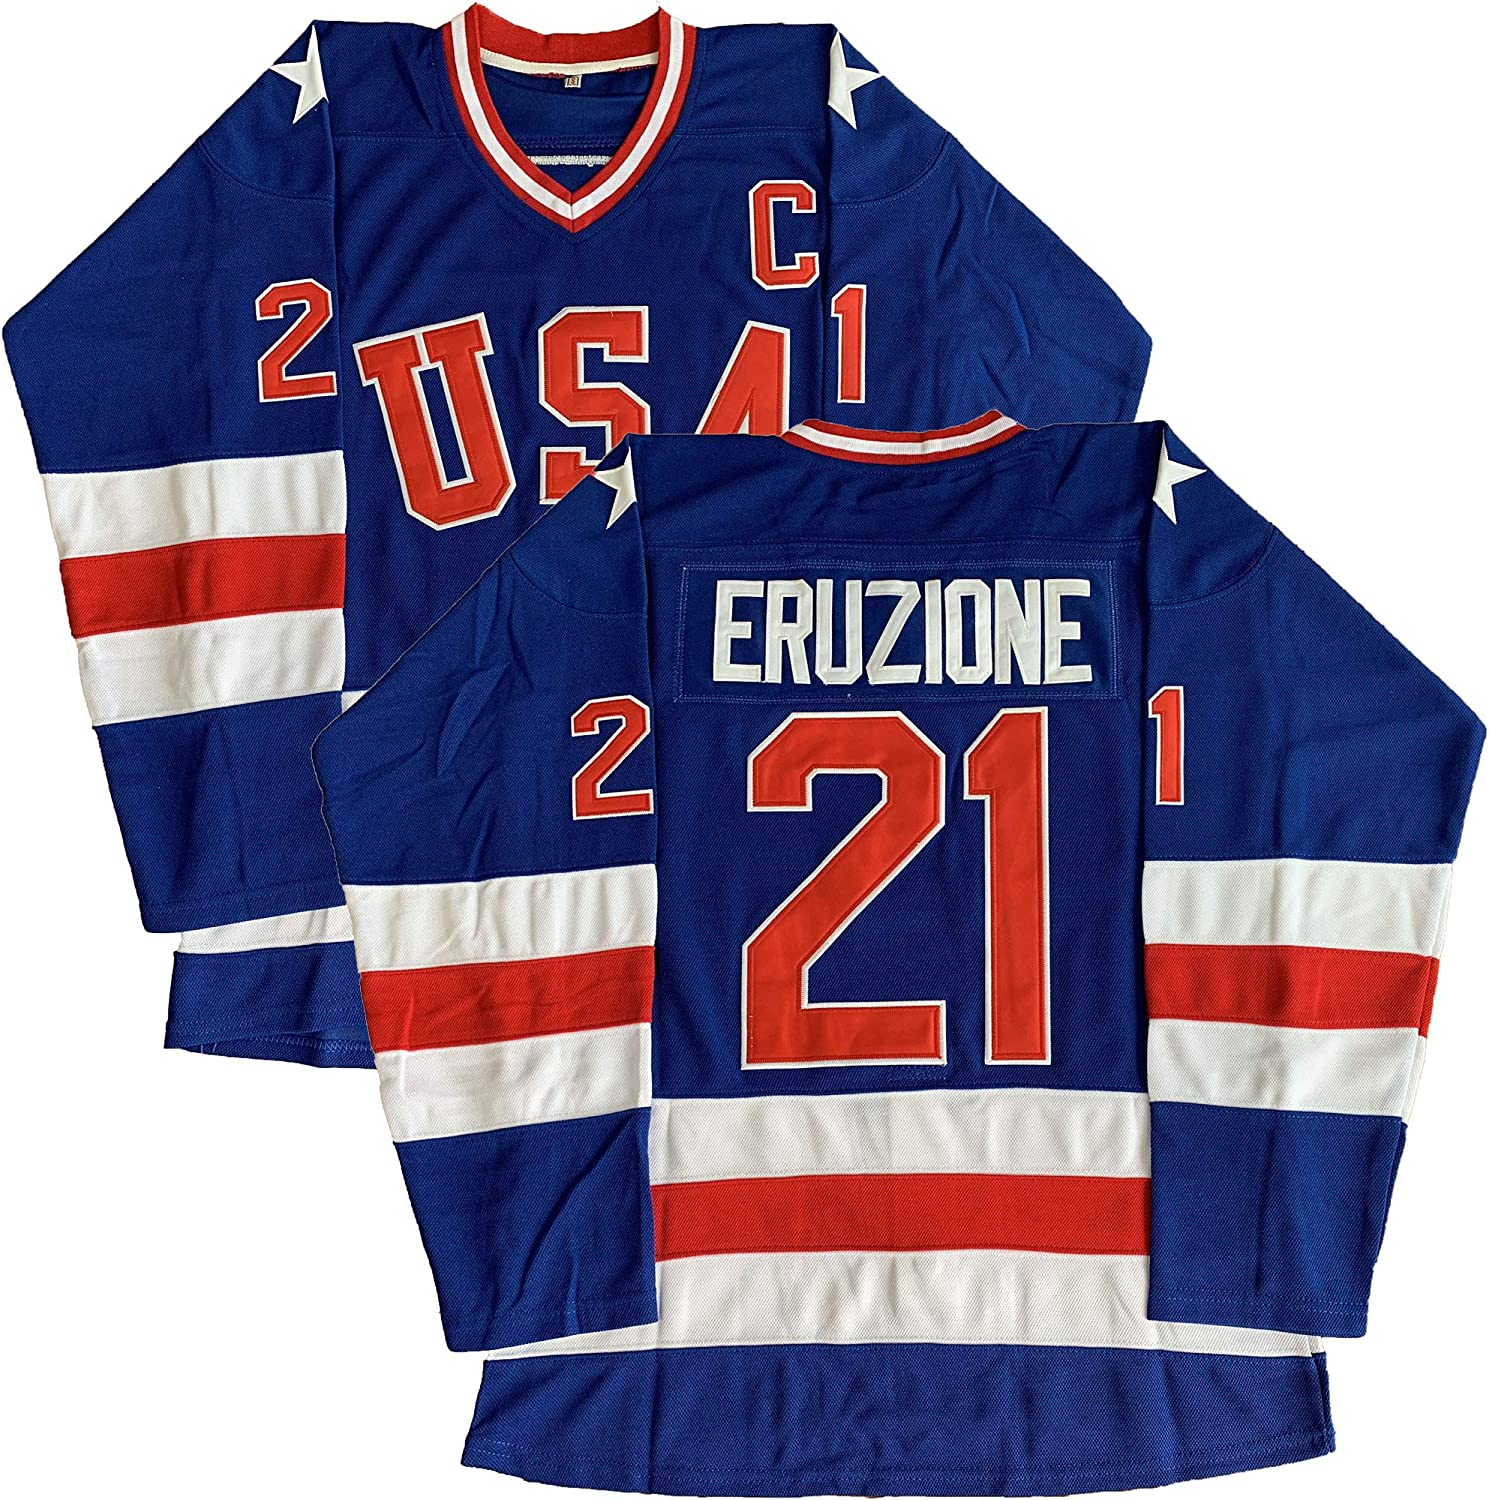 #21 Mike Eruzione 1980 Miracle On Ice USA Hockey 17 Jack O'Callahan 30 Jim Craig Stitched Hockey Jerseys (21 Blue, Large)